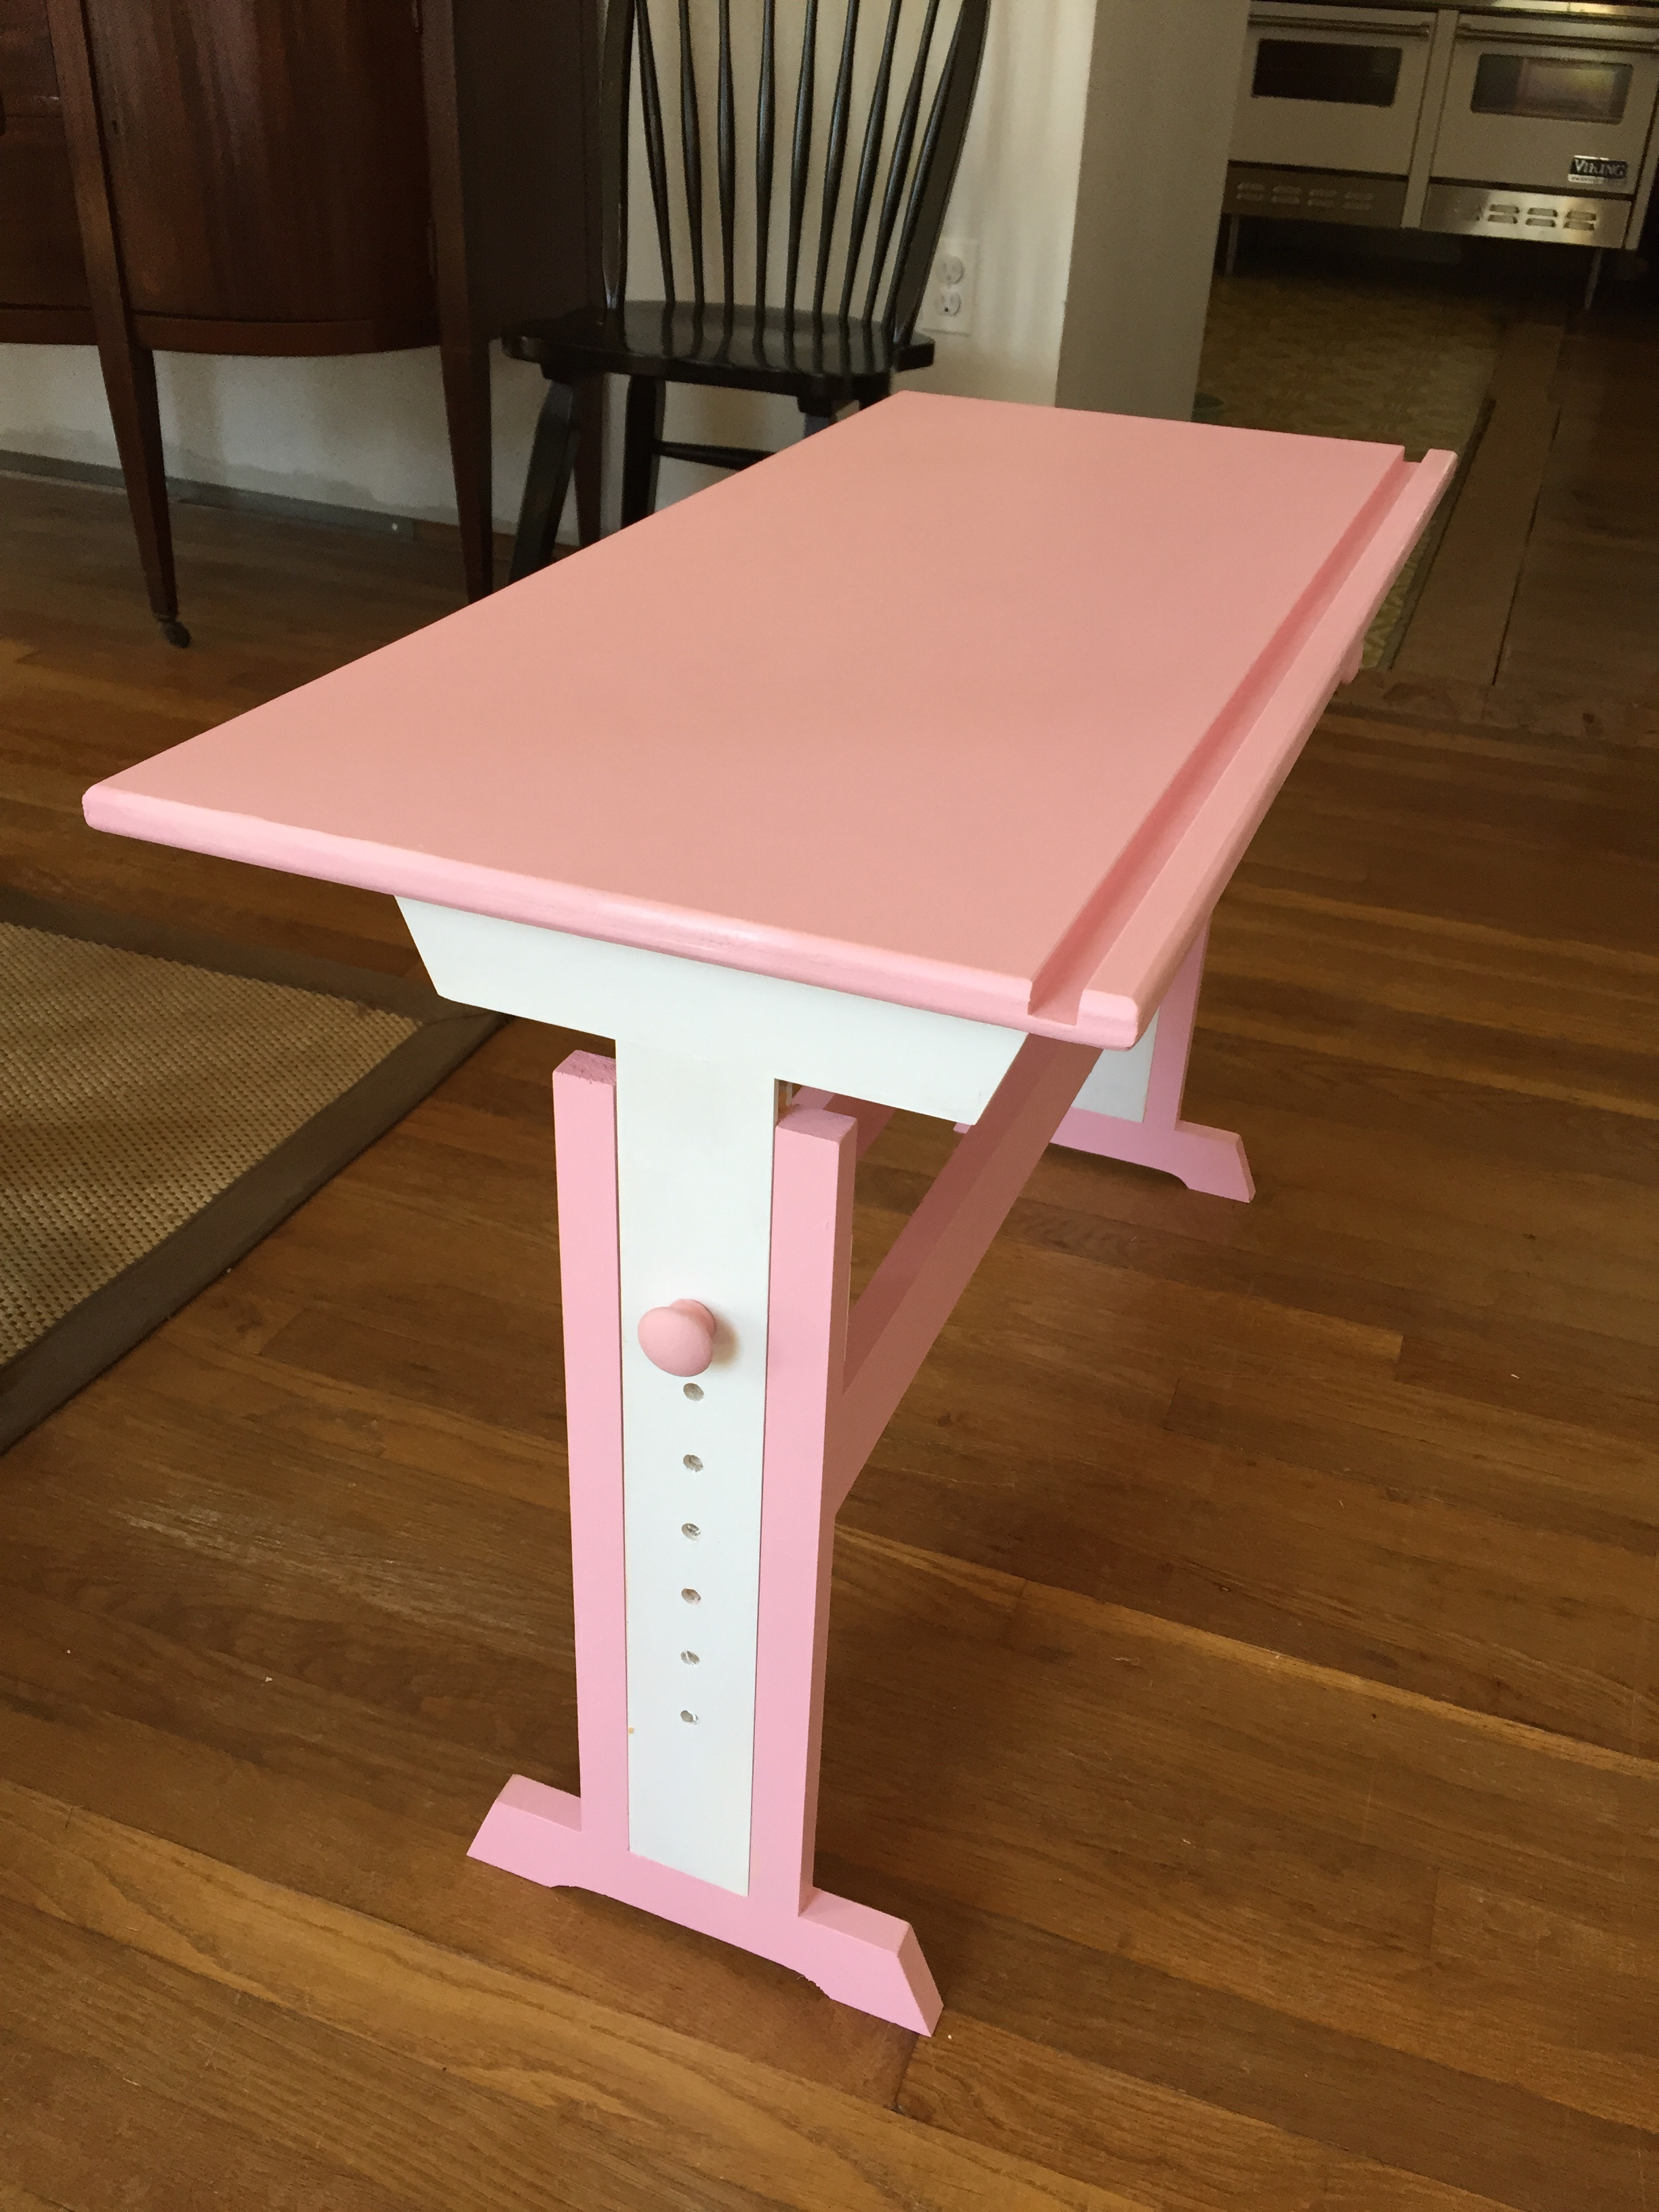 I made a pair of these kid's art desks as gifts for my cousins' kids based on a design I saw online.